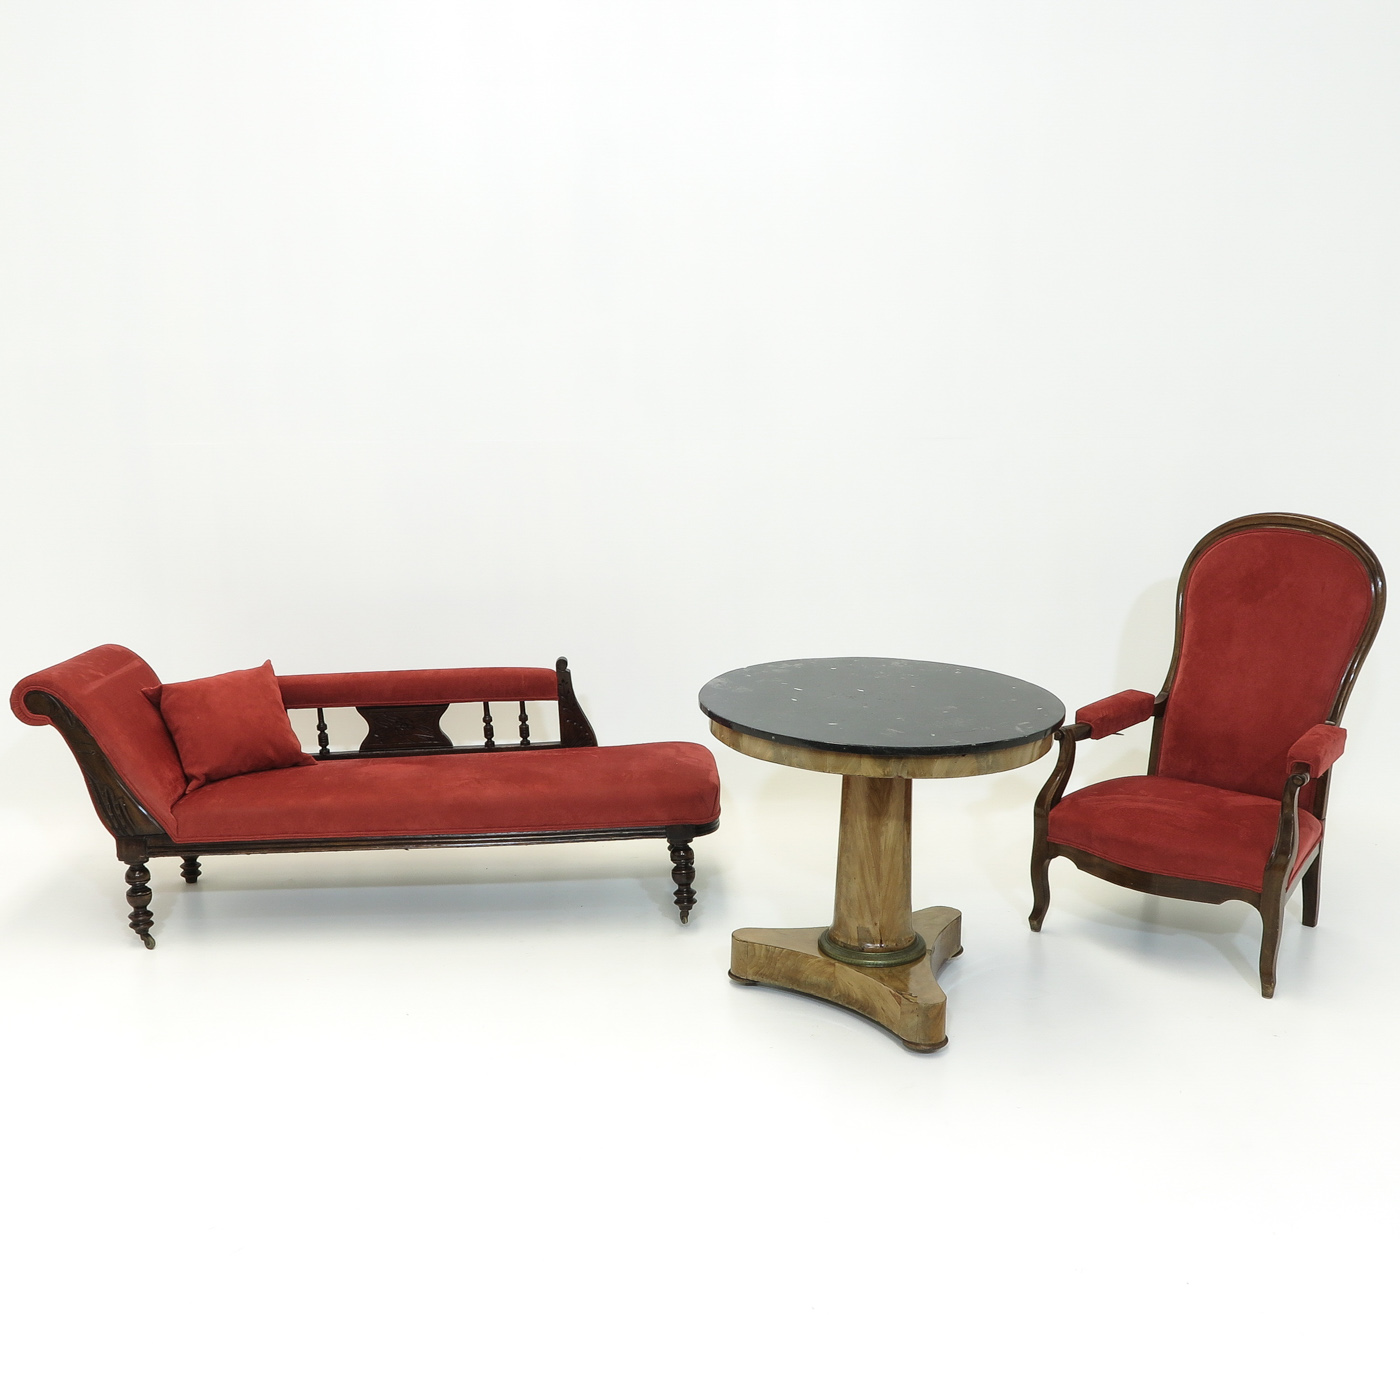 Lot 1017 - A Diverse Collection of Antique Furniture